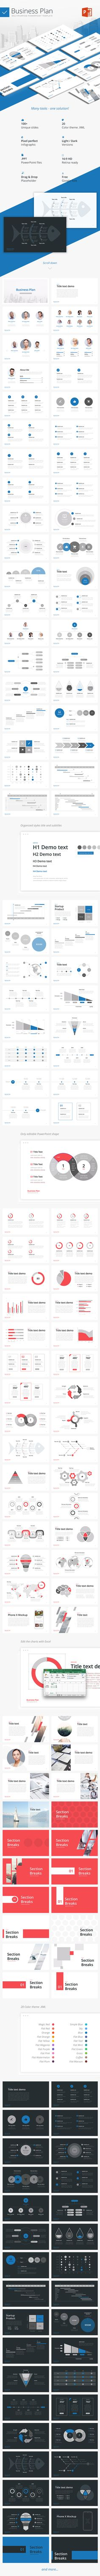 Download Now Business Plan – Multipurpose PowerPoint Template: 100 Unique slides, professional design, perfect pixel infographic, 20 Pre made XML color themes. 16:19 HD, Retina Ready. Ideal solution for marketing or business report: gallery slides, swot analysis, porter analysis, about us slide, table, timeline, gantt, pie and bar chart, fishbone diagram, funnel, pyramid, AIDA model and more. Easy to edit. 2 Click customization. #slides #ppttemplates #powerpointtemplates #startup #marketing